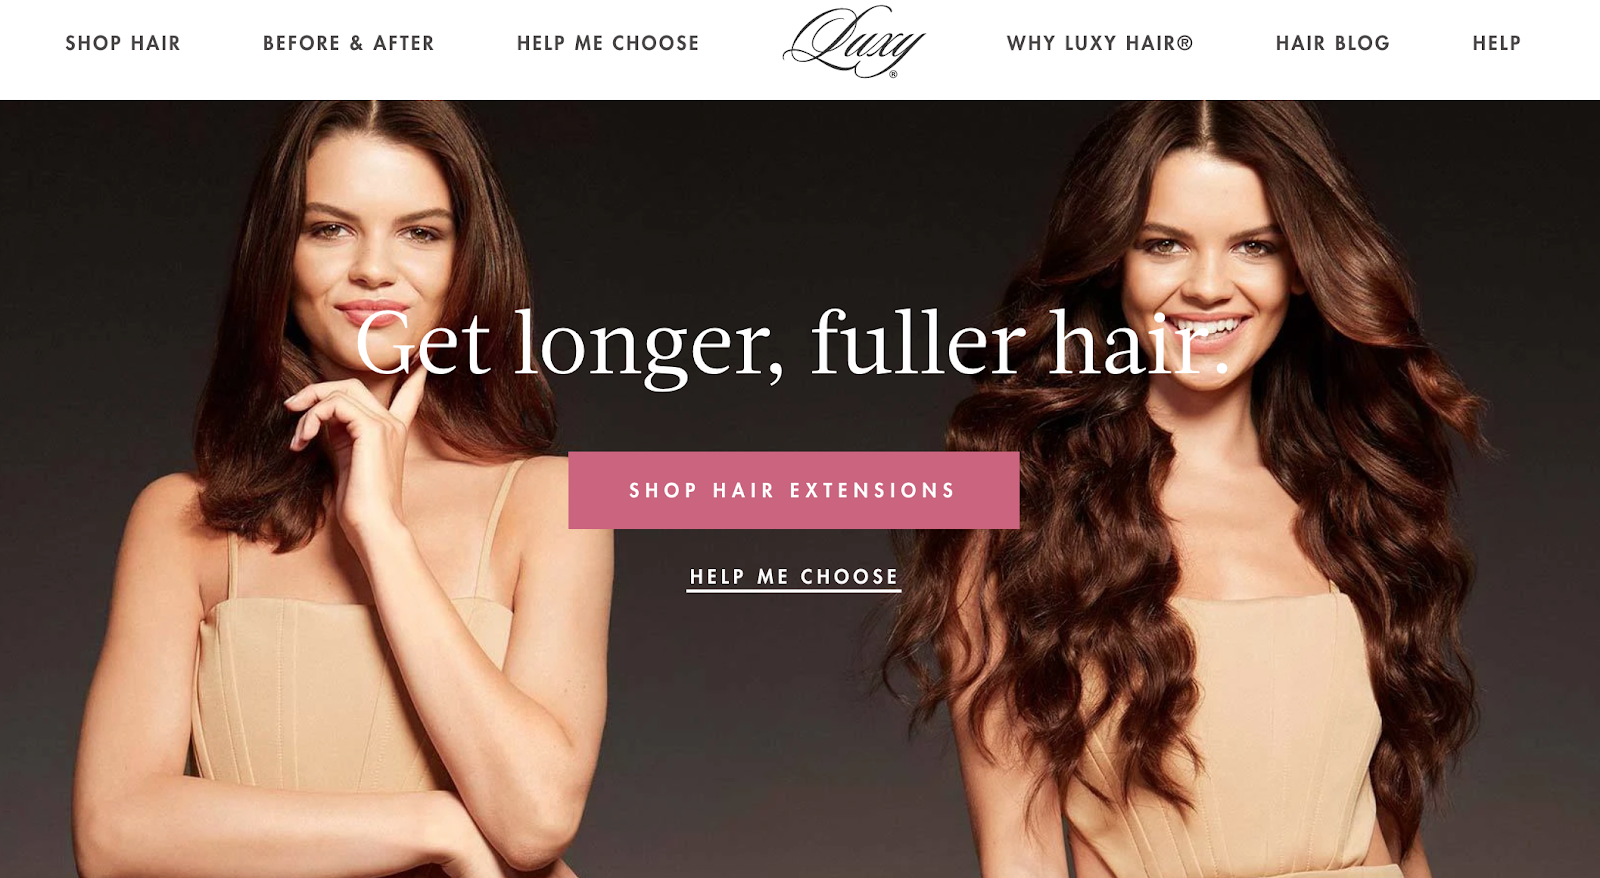 Luxy Hair homepage with before and after shots of Luxy extensions